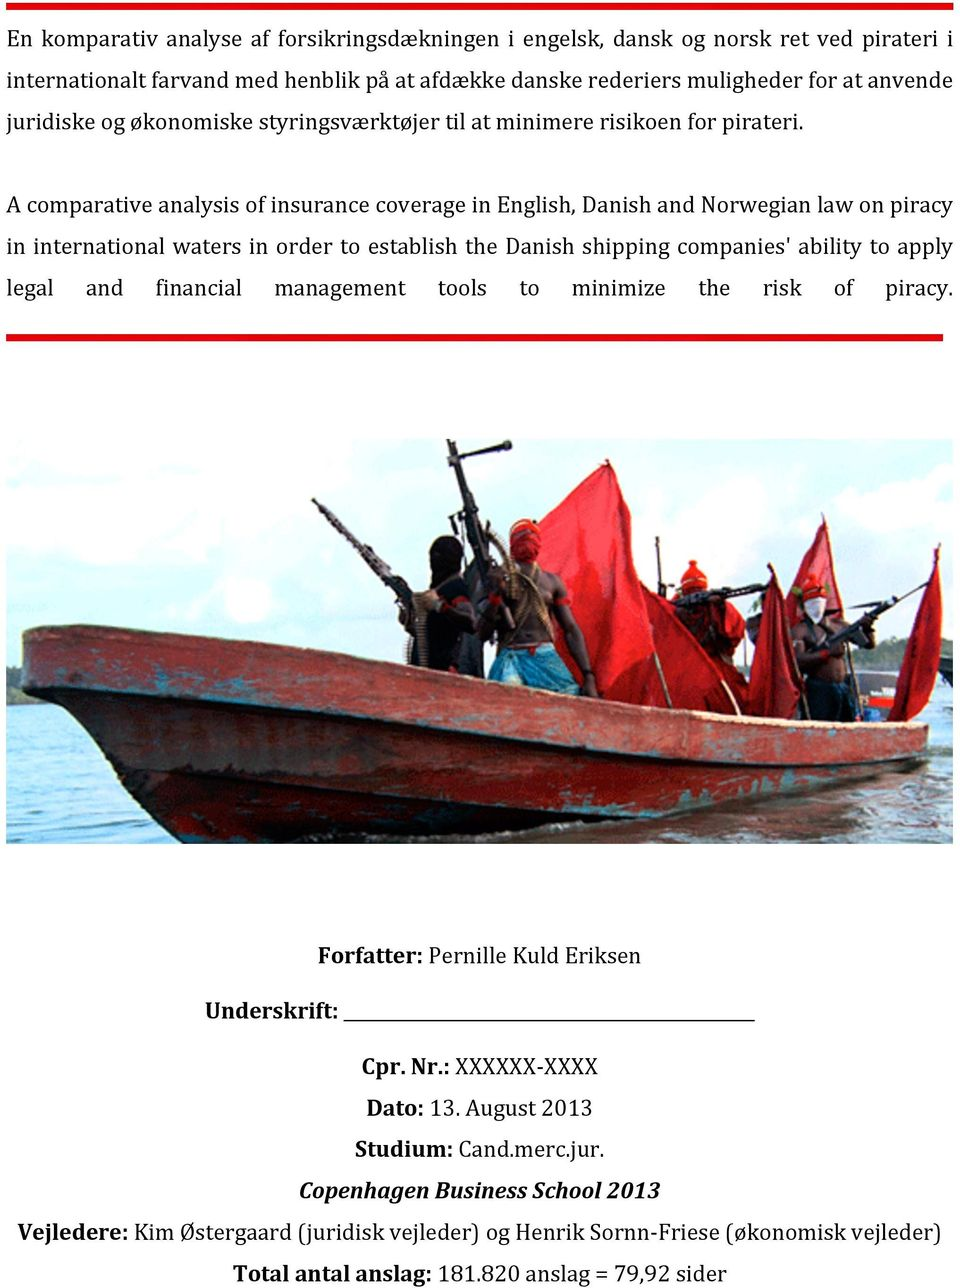 A comparative analysis of insurance coverage in English, Danish and Norwegian law on piracy in international waters in order to establish the Danish shipping companies' ability to apply legal and